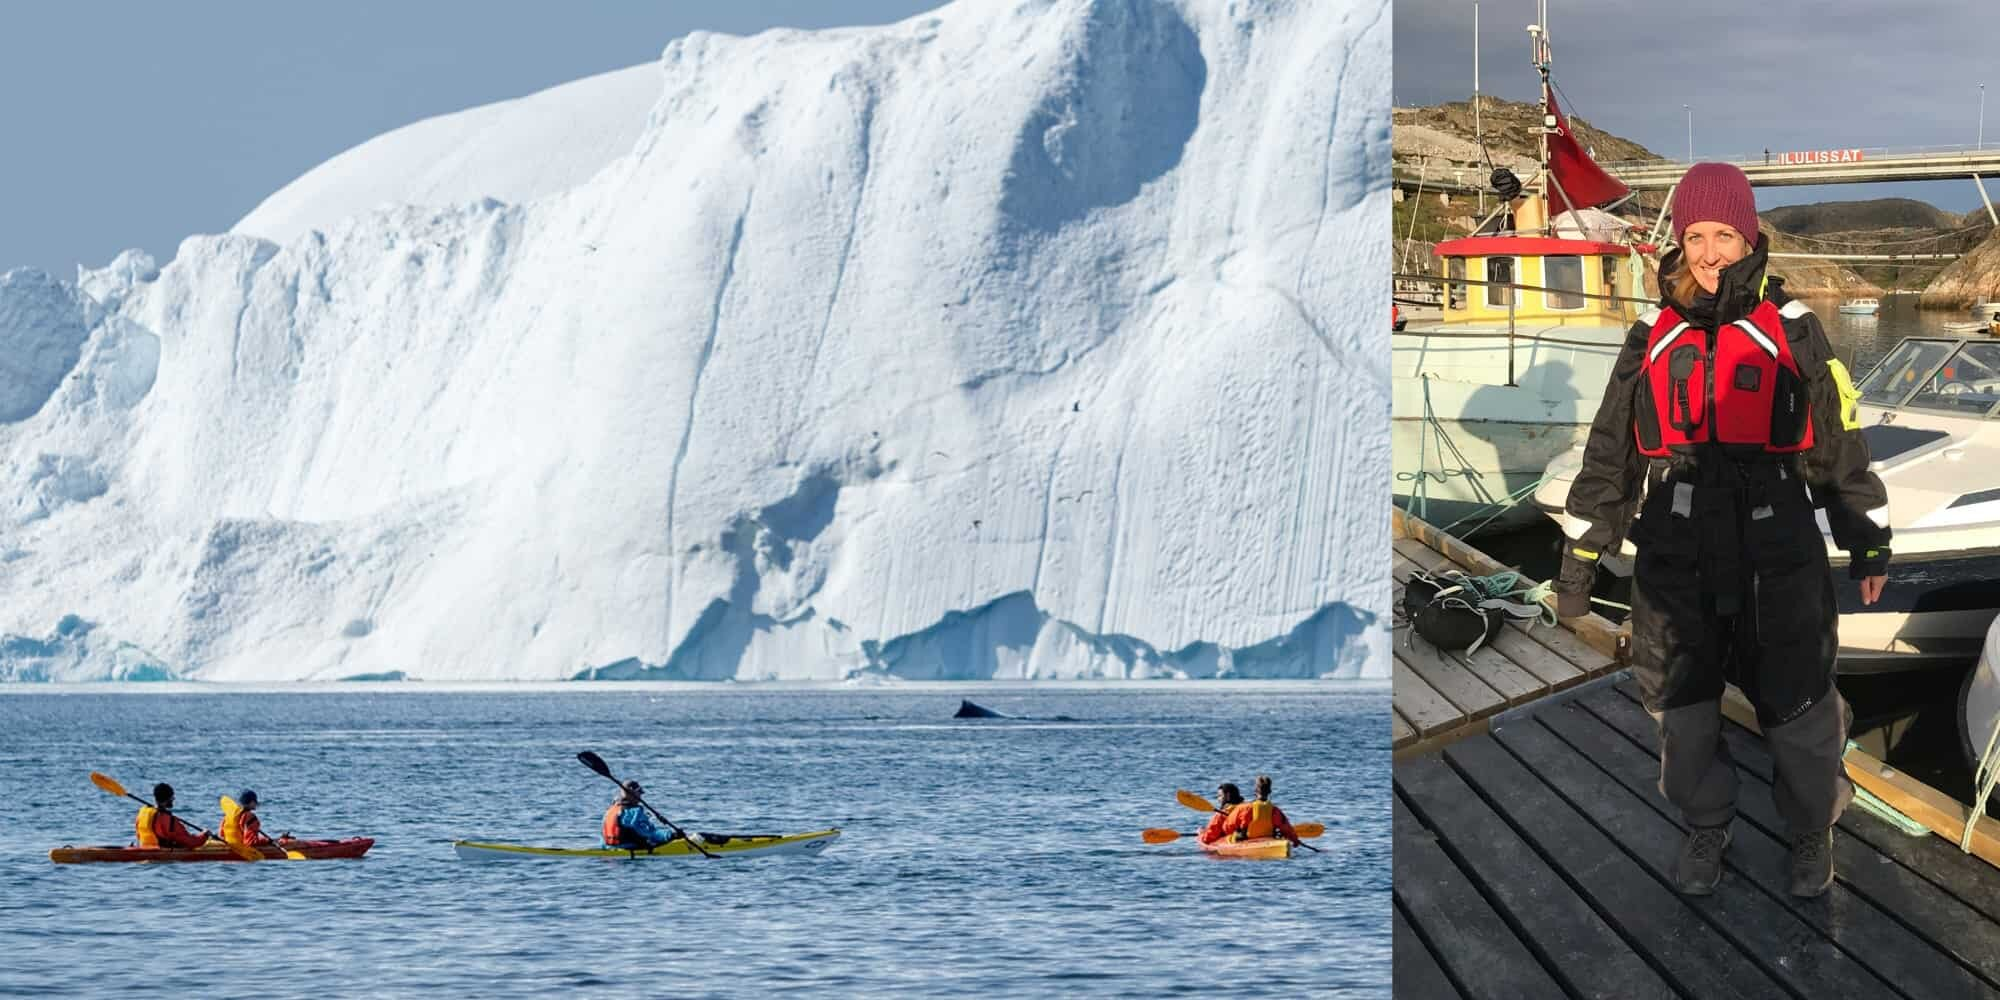 Photographing the icebergs of Ilulissat, Greenland